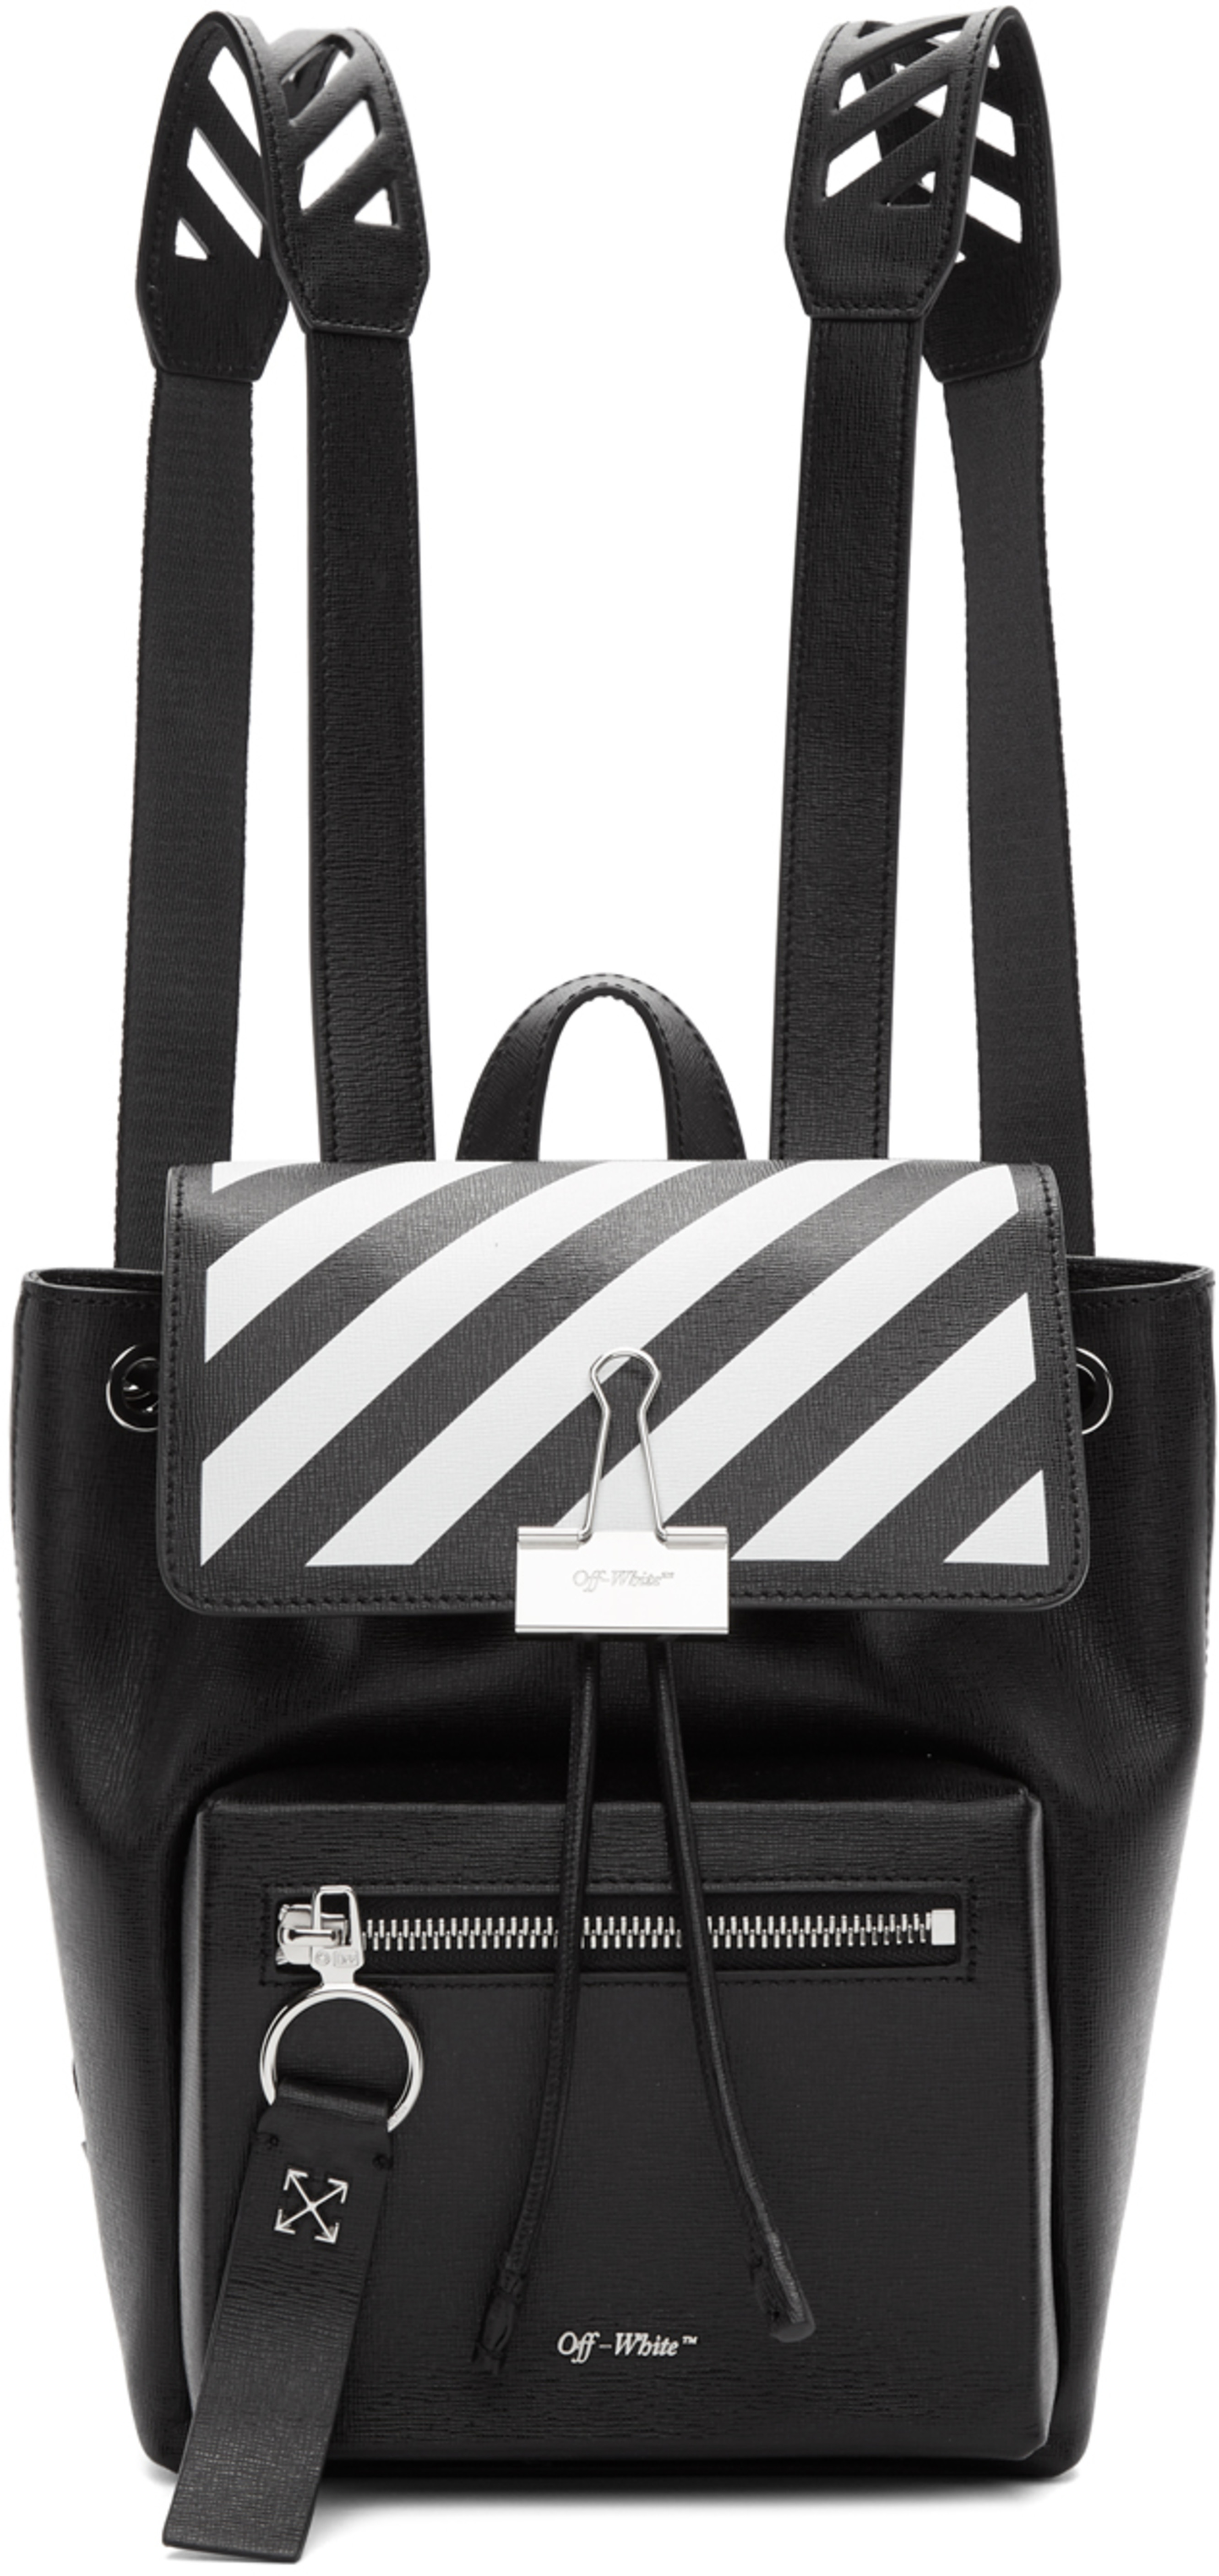 d67449a8b5dbe Off-white bags for Women